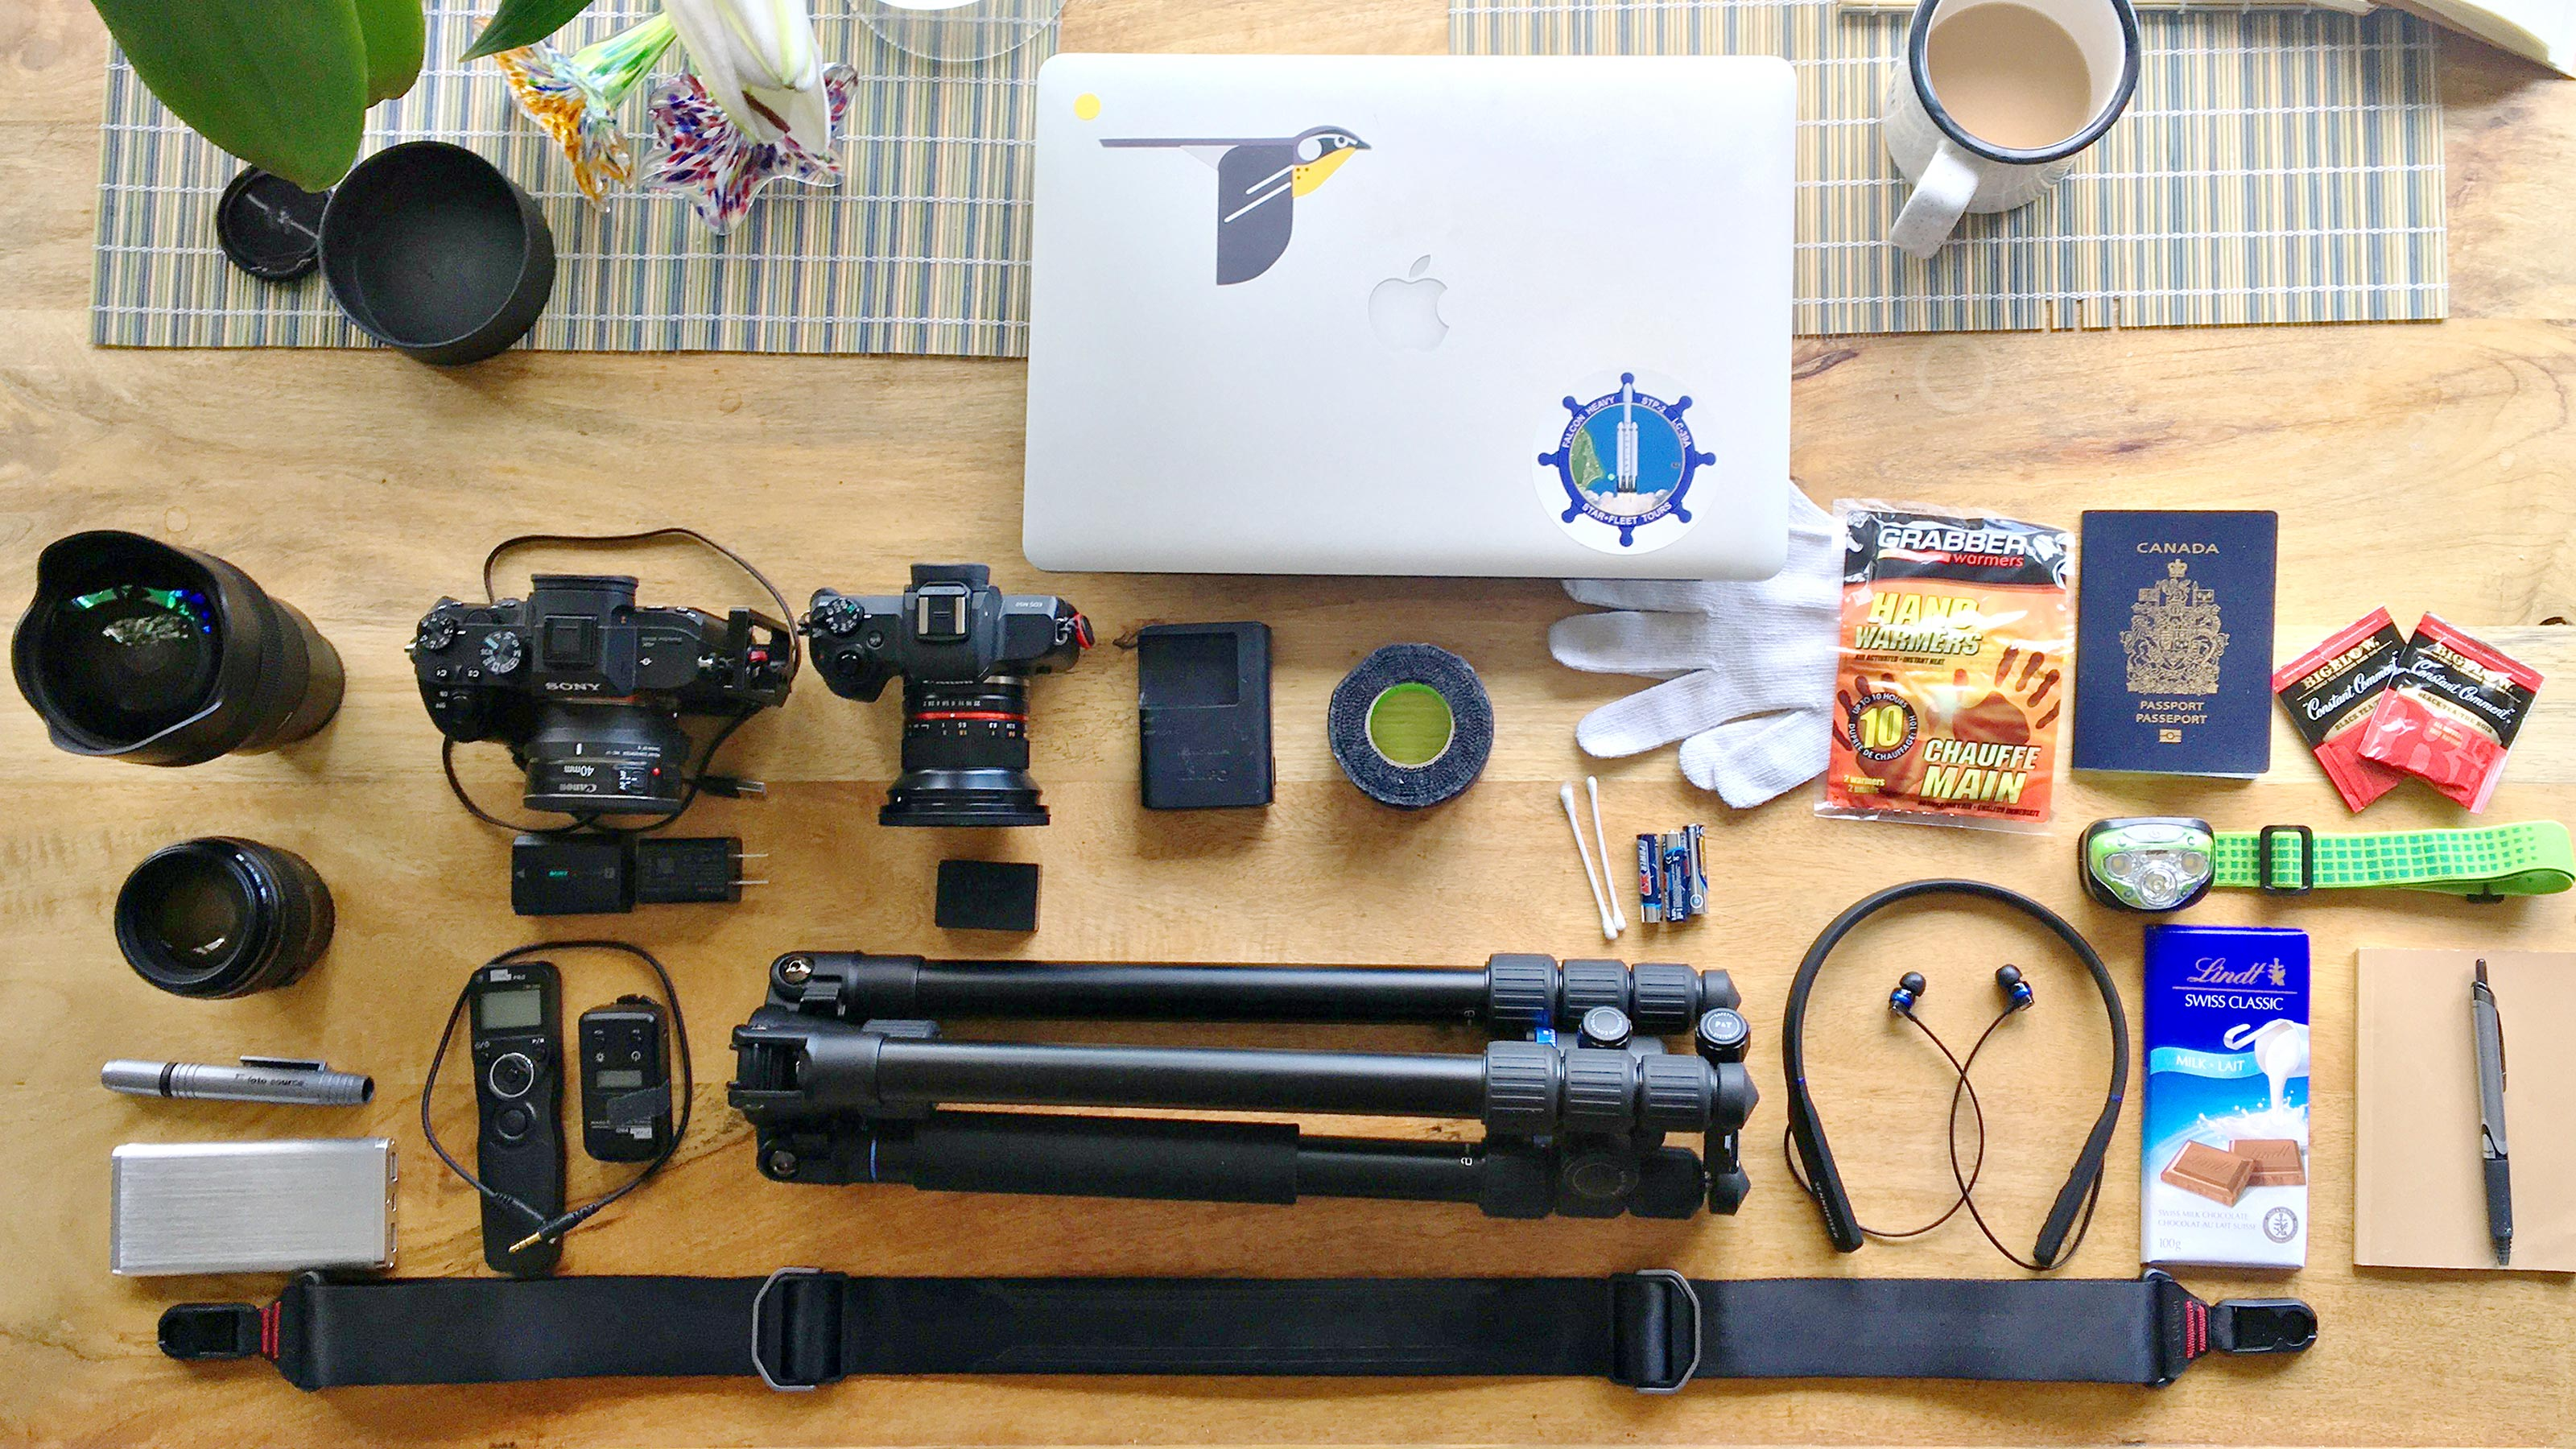 Photo gear laid out on a table